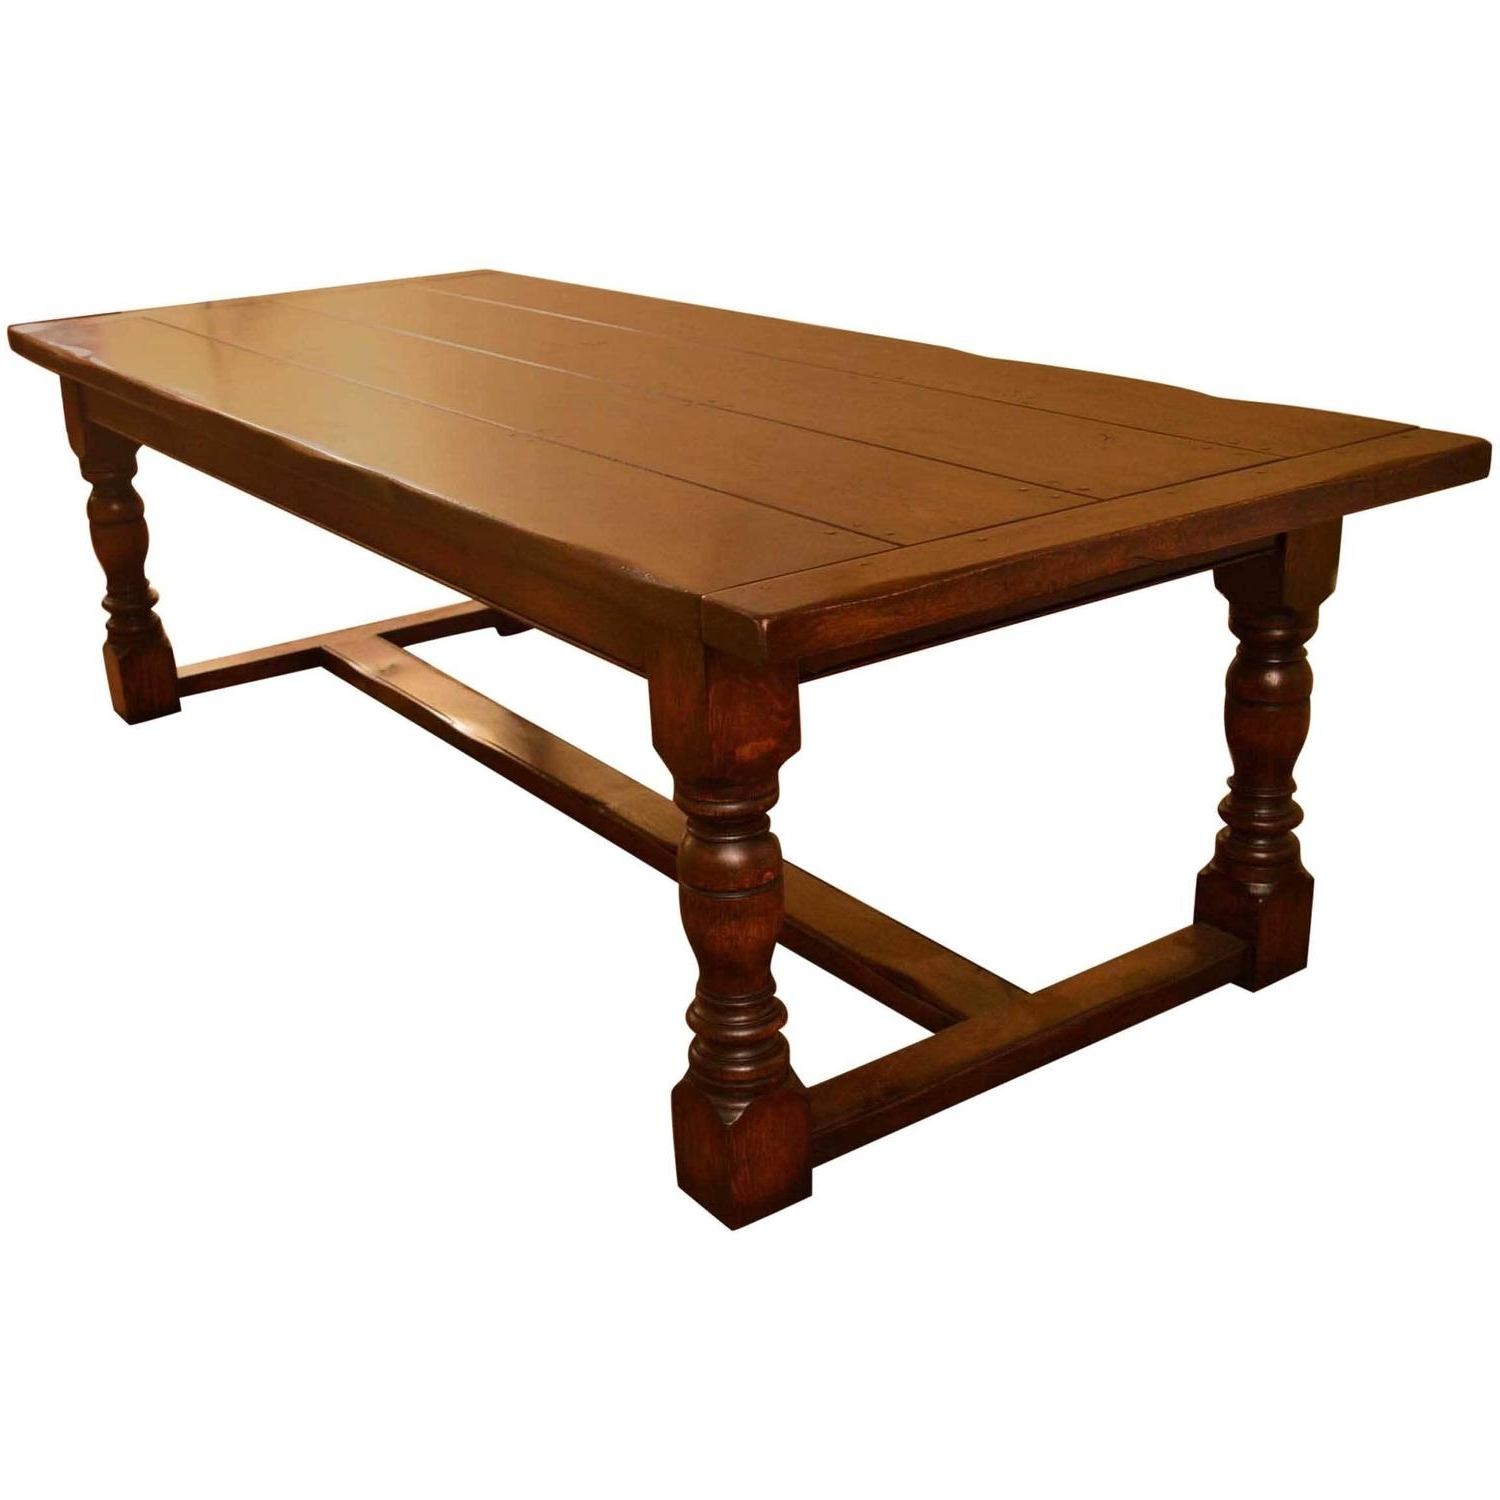 3Ft Dining Tables with regard to Trendy Vintage English Solid Oak Refectory Dining Table 8 Ft 6 X 3Ft At 1Stdibs